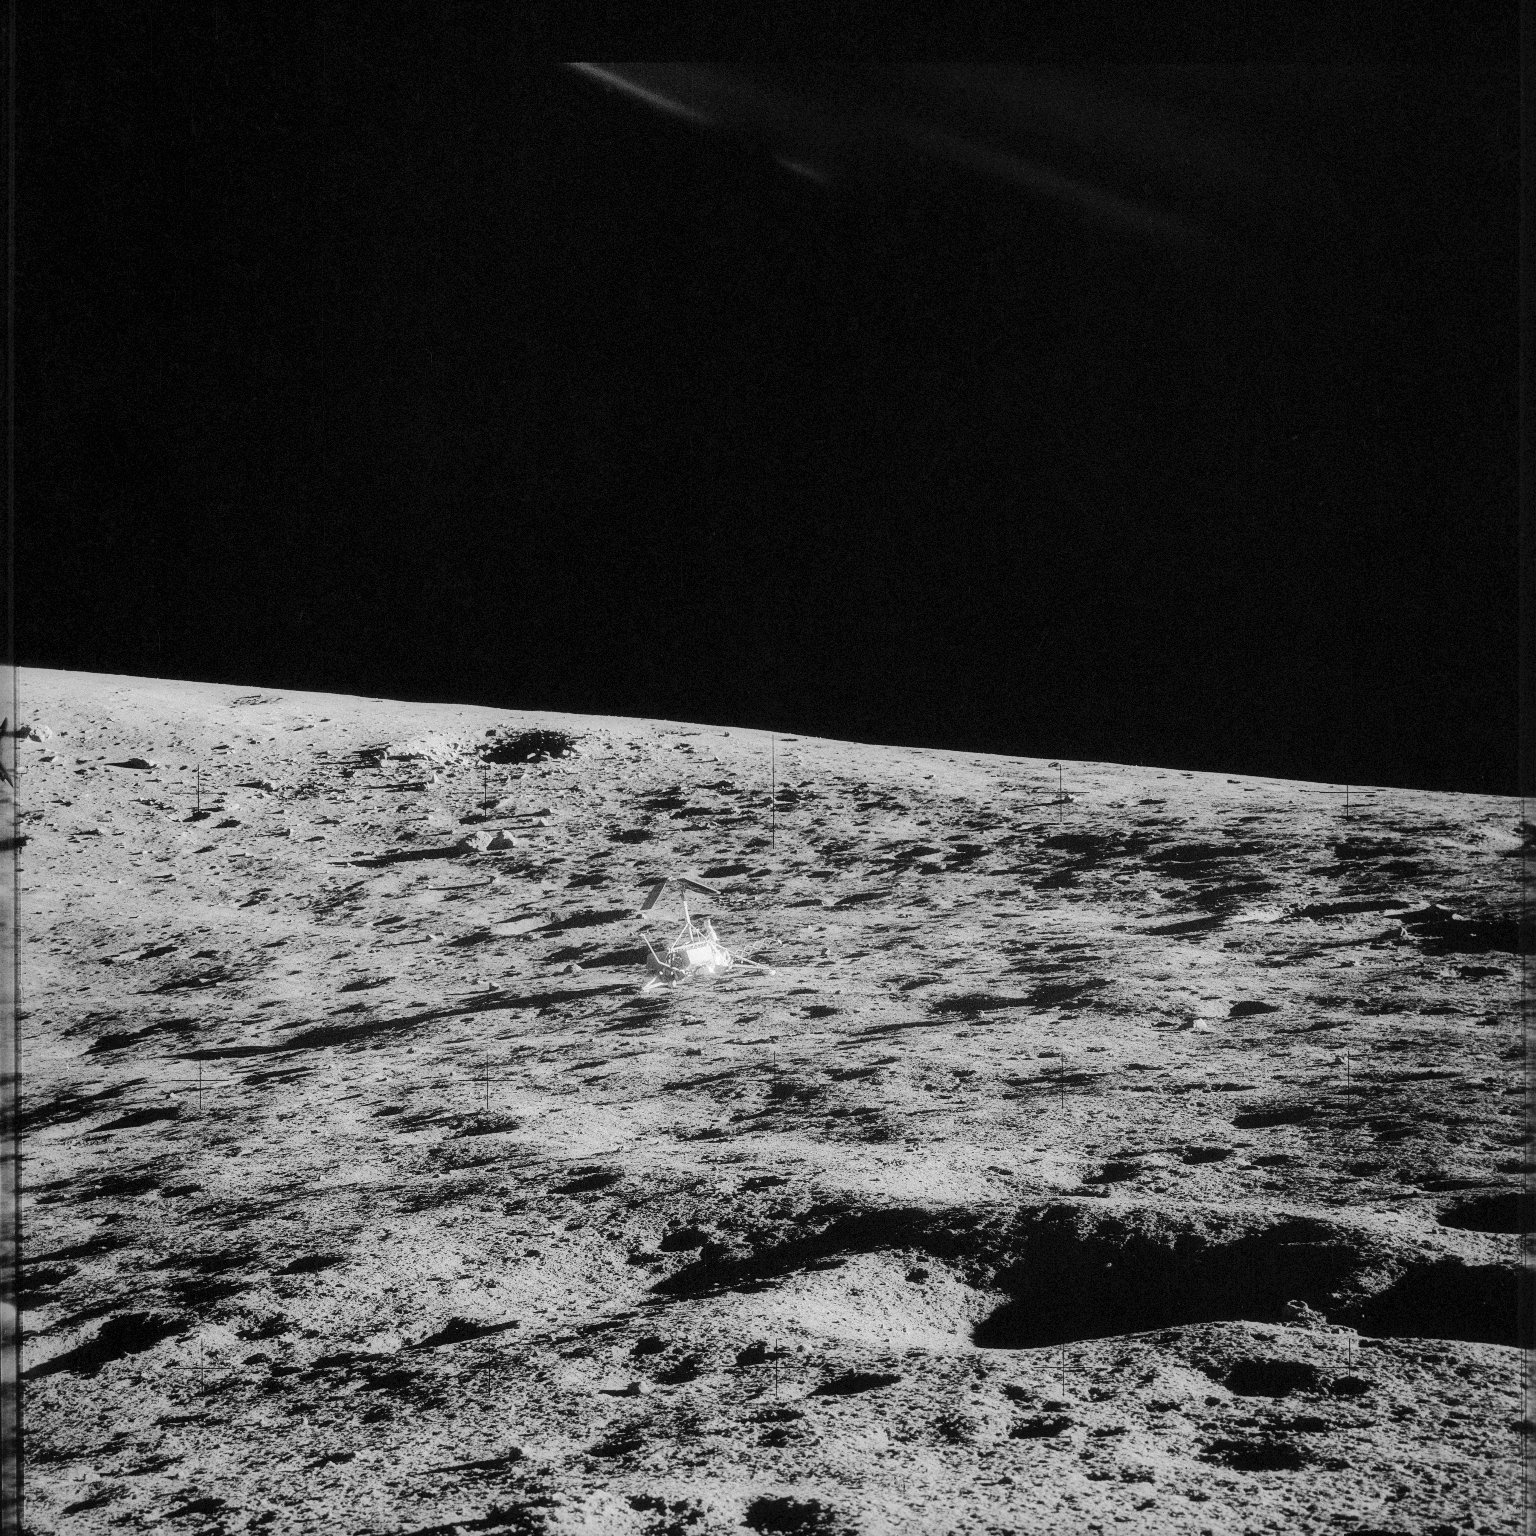 Apollo 12 Mission image - Surveyor Crater and Surveyor III, which landed April 19, 1967